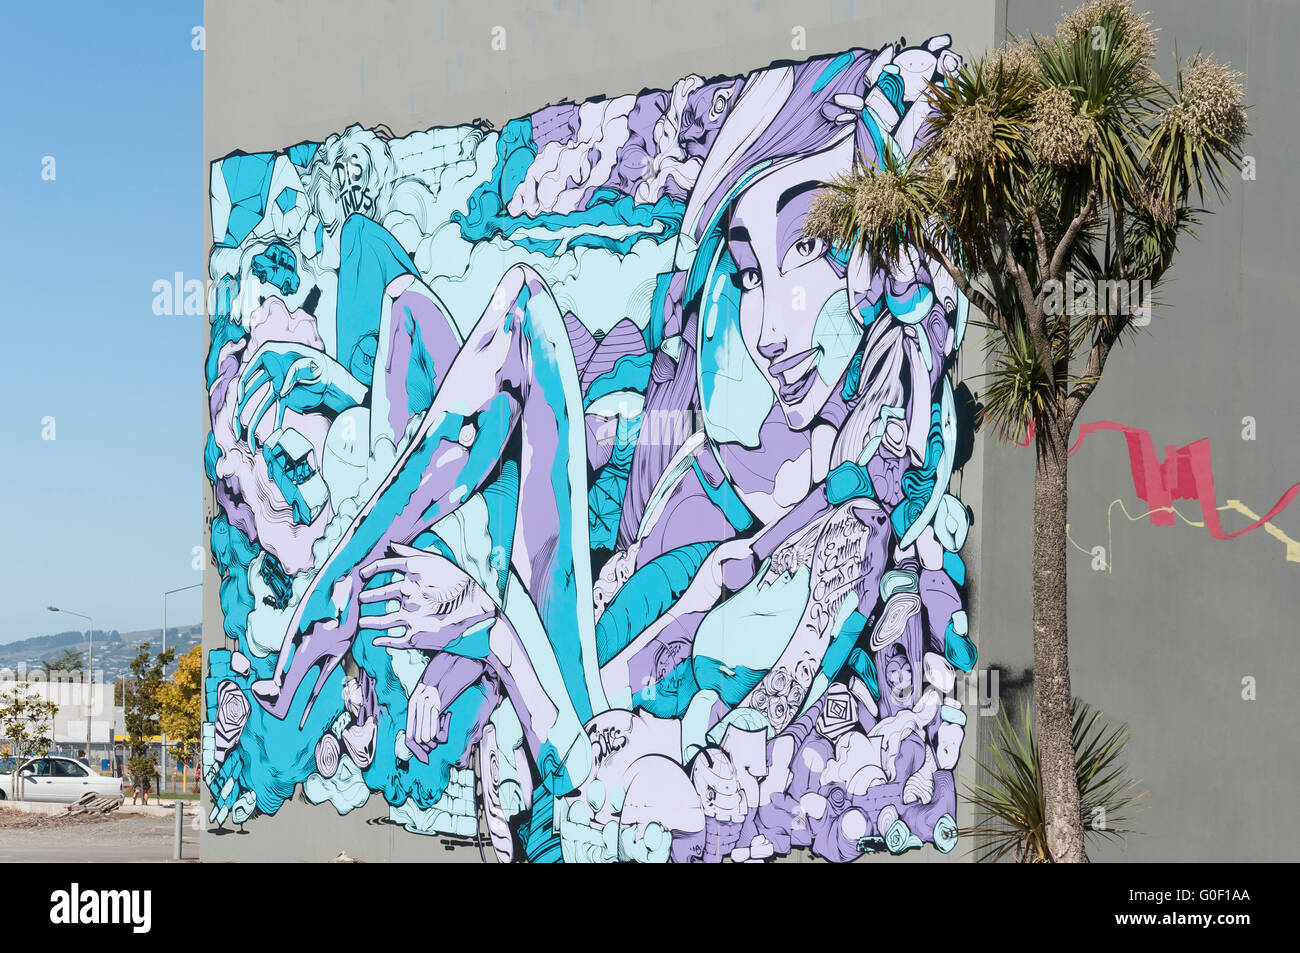 'A new beginning' mural on wall, Hereford Street, Christchurch, Canterbury, New Zealand - Stock Image